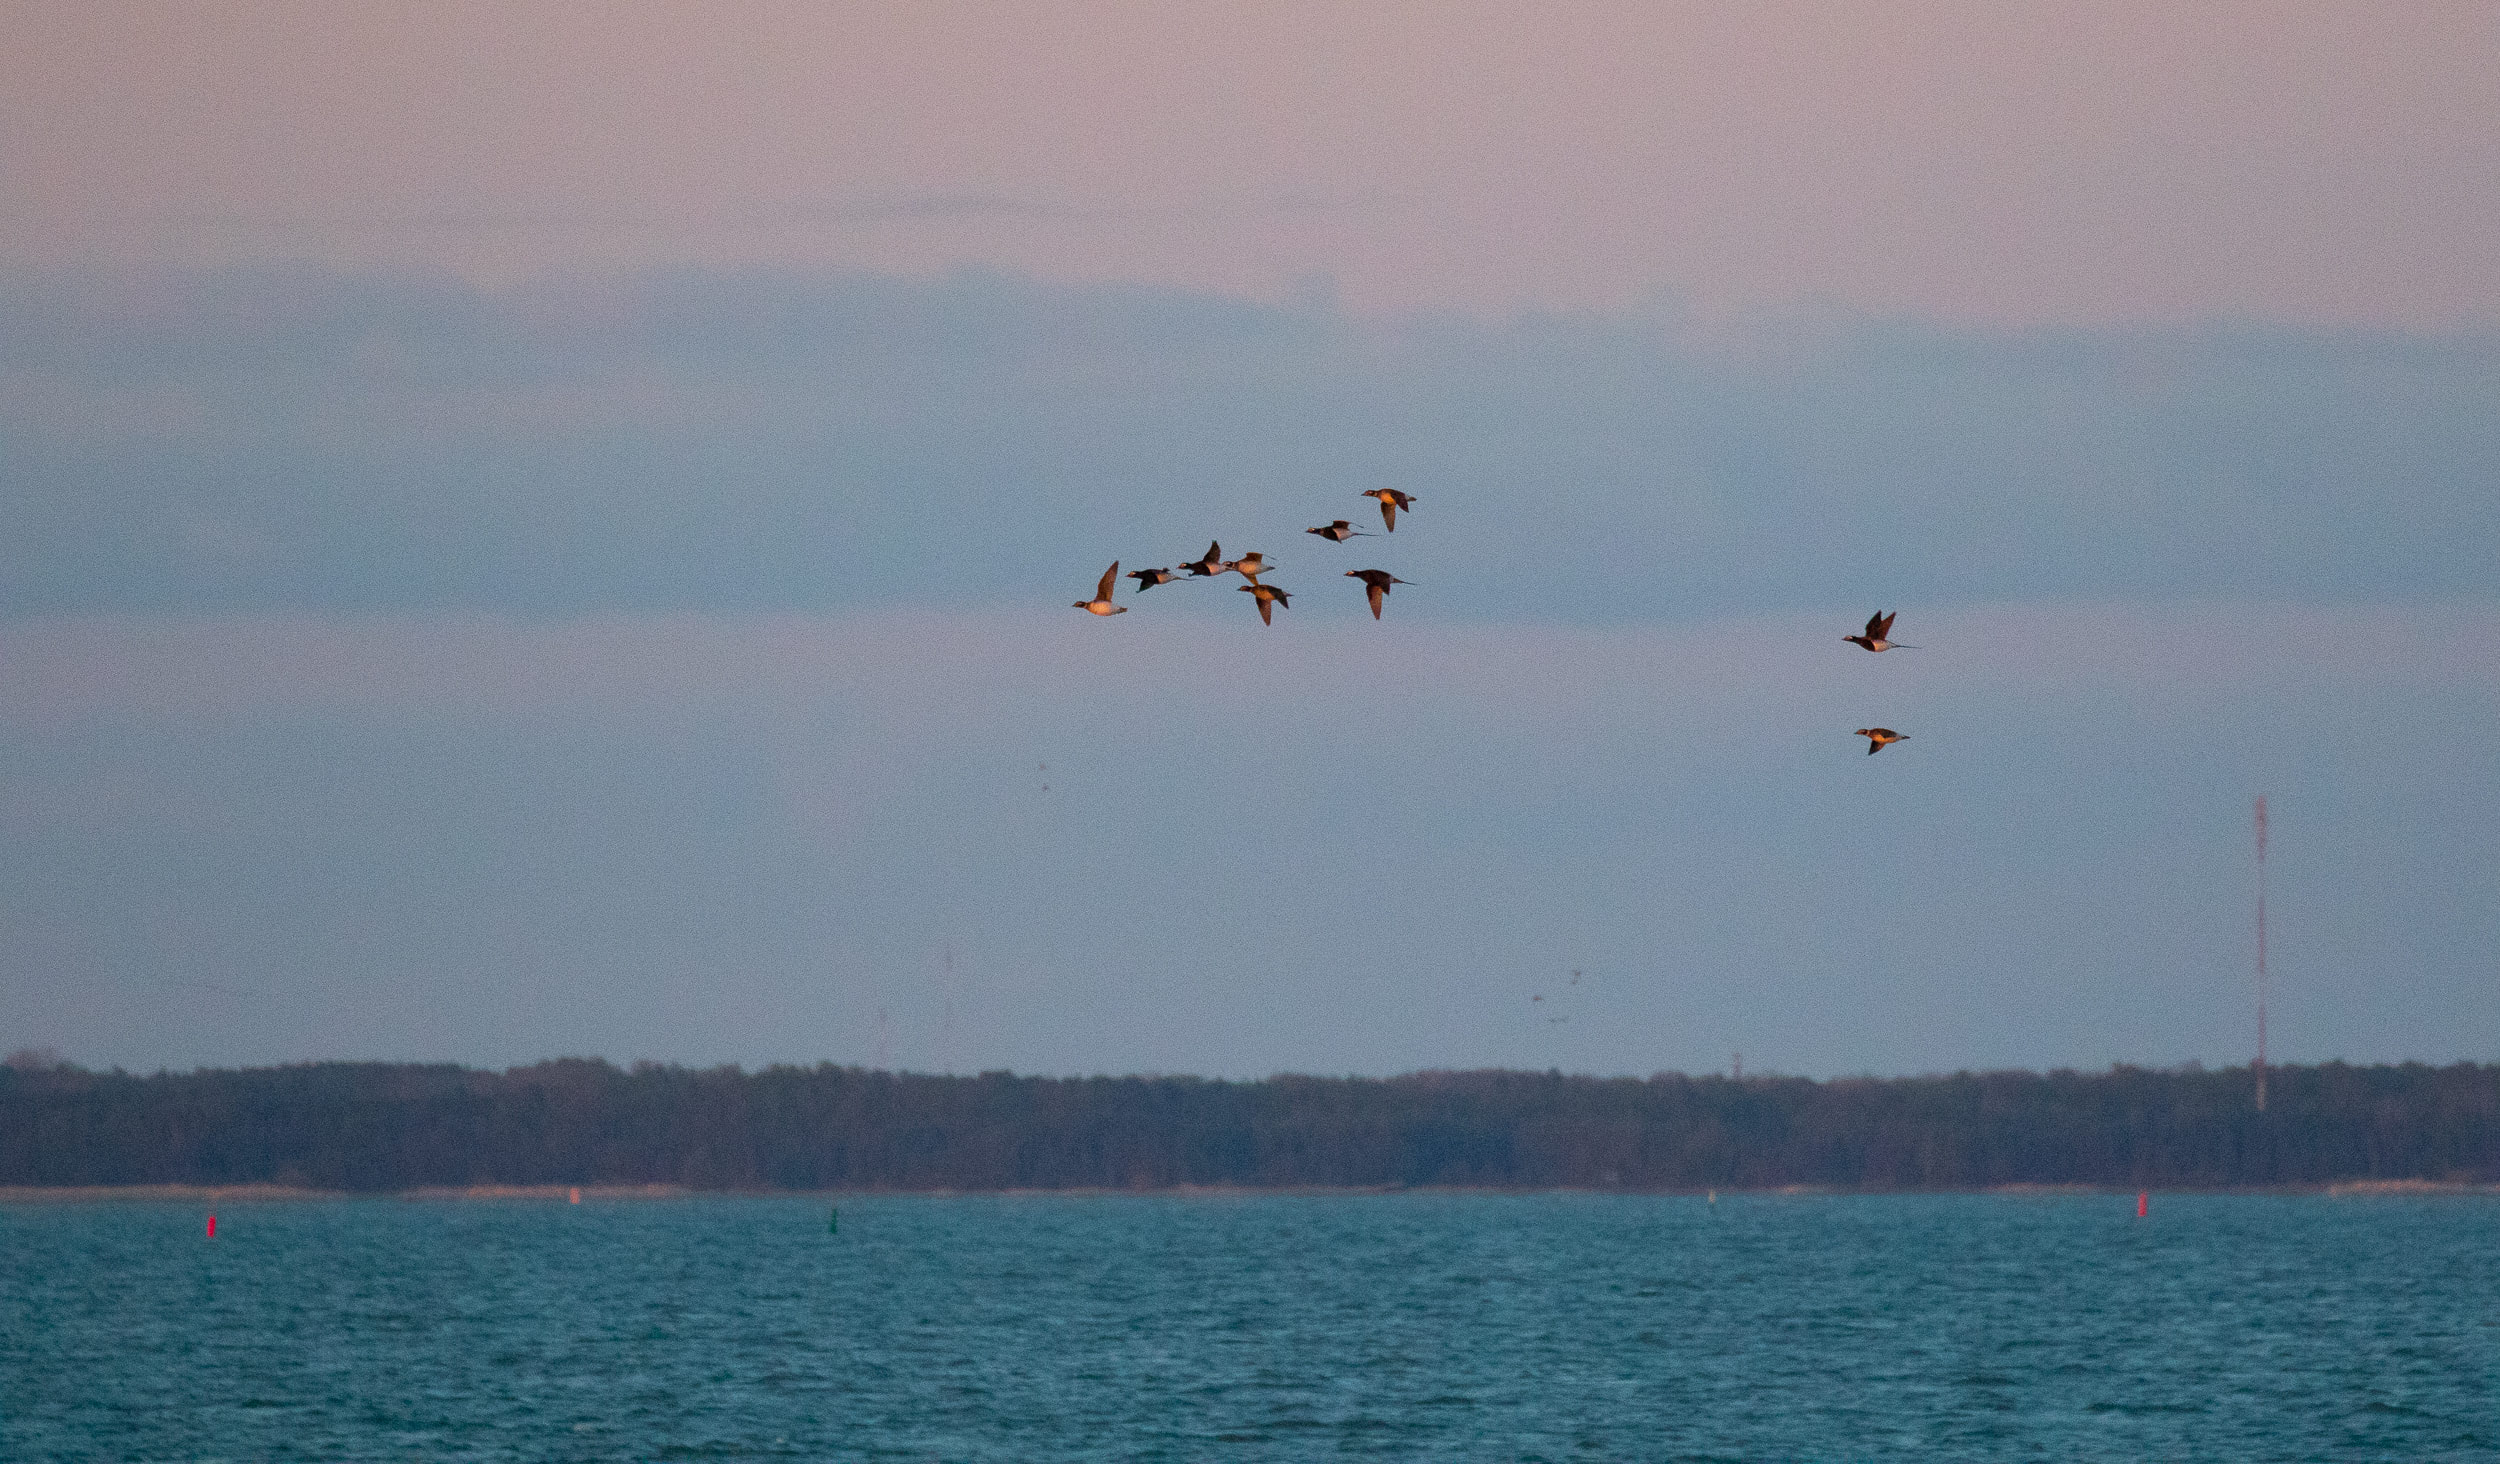 A flock of — you guessed it — Long-tailed Ducks taking off for the night.